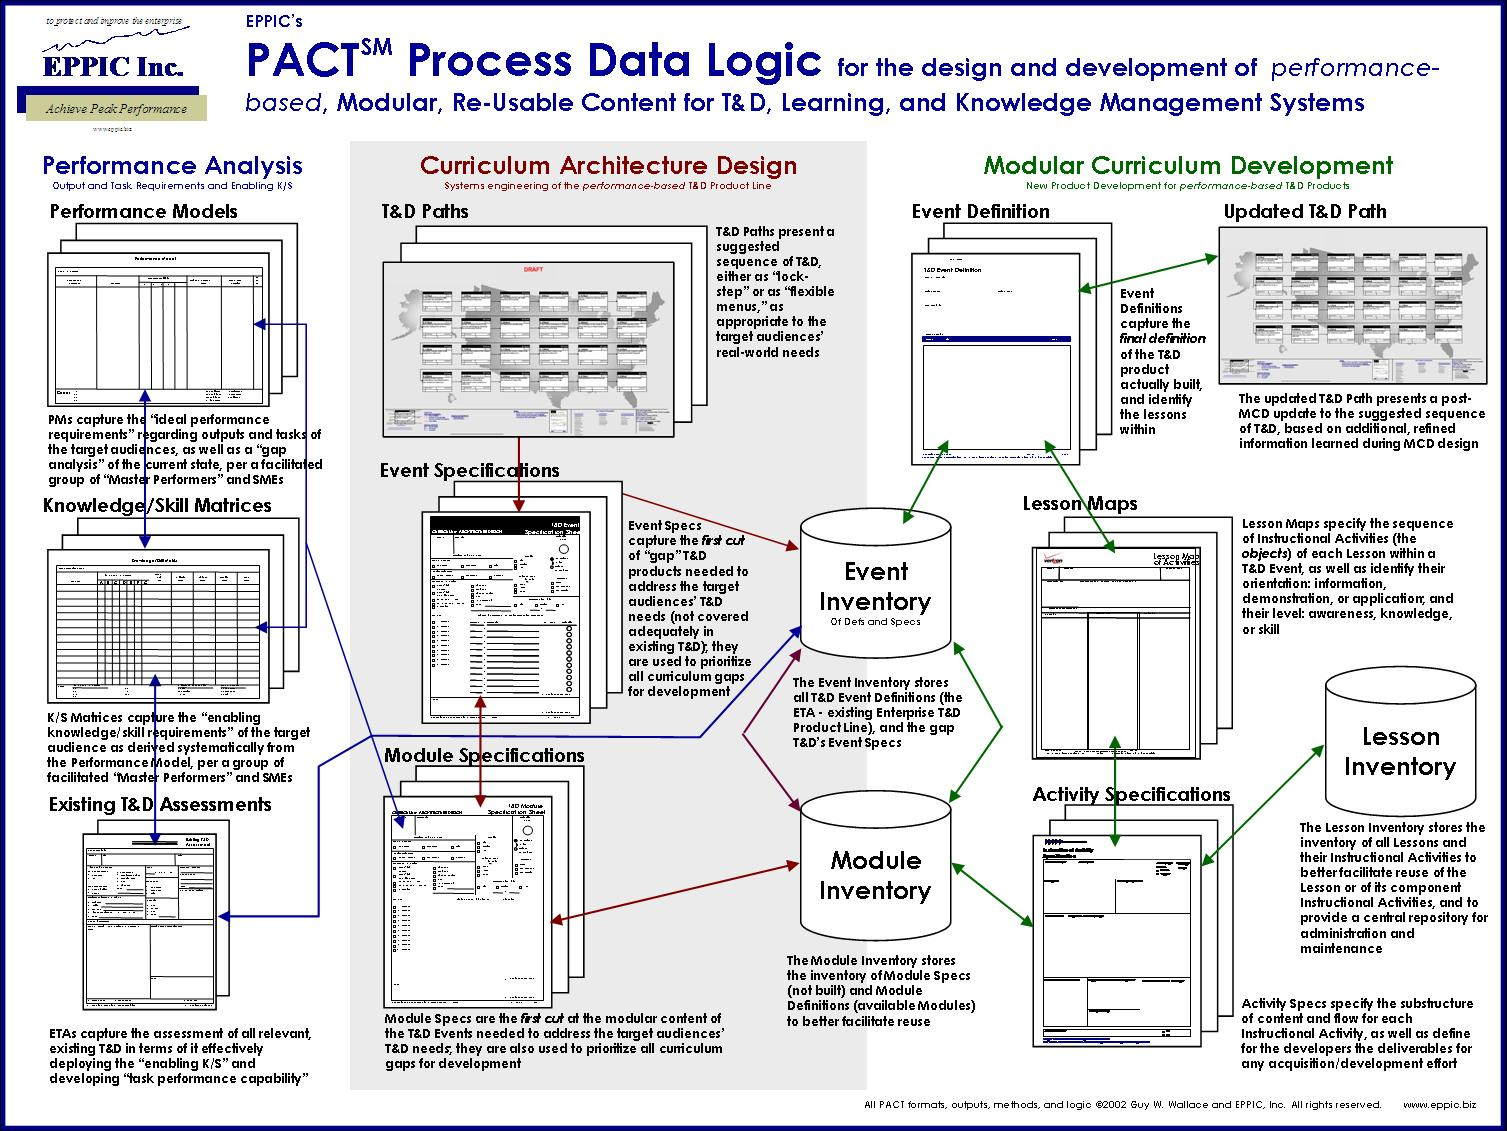 PACT Data Logic Diagram | EPPIC - Pursuing Performance